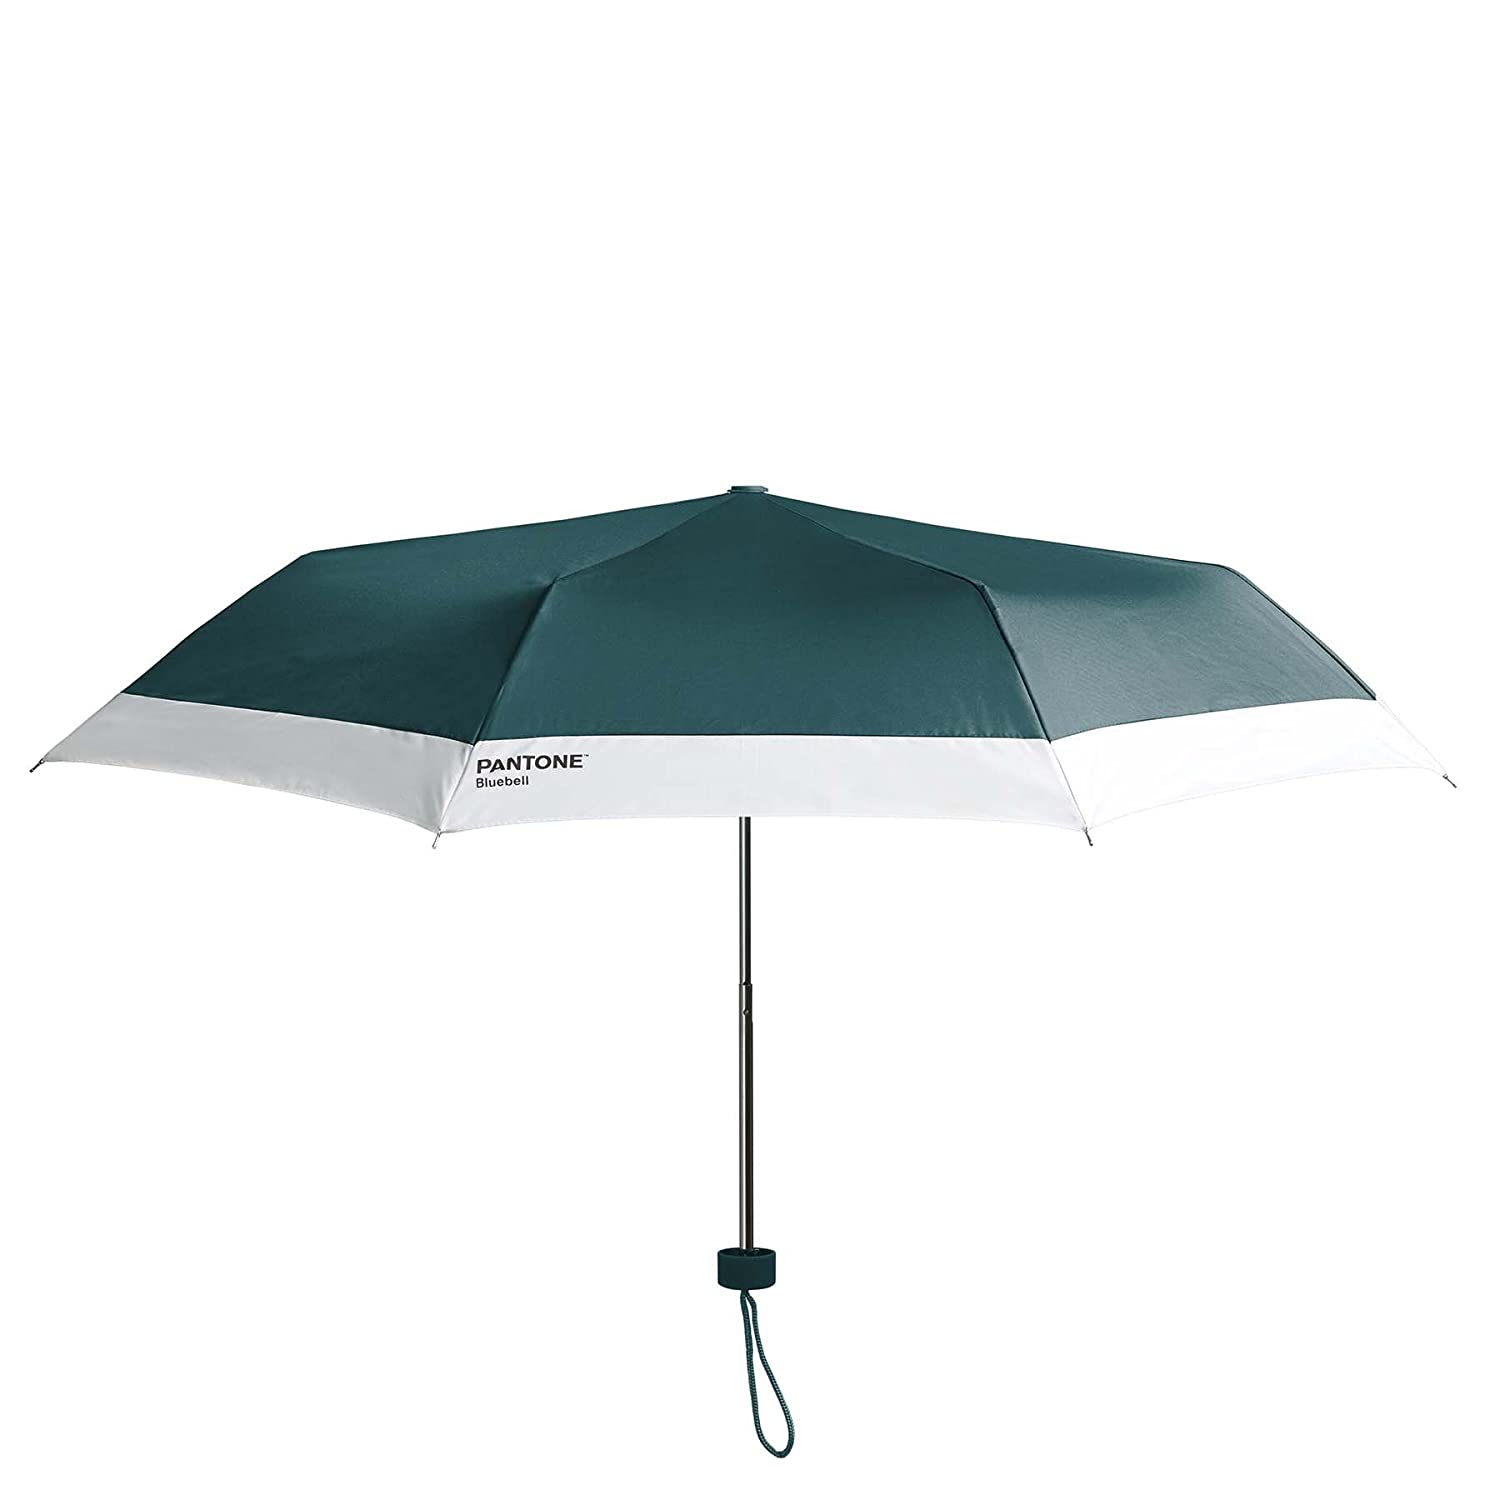 Pantone Compact Umbrella Bluebell by Briers